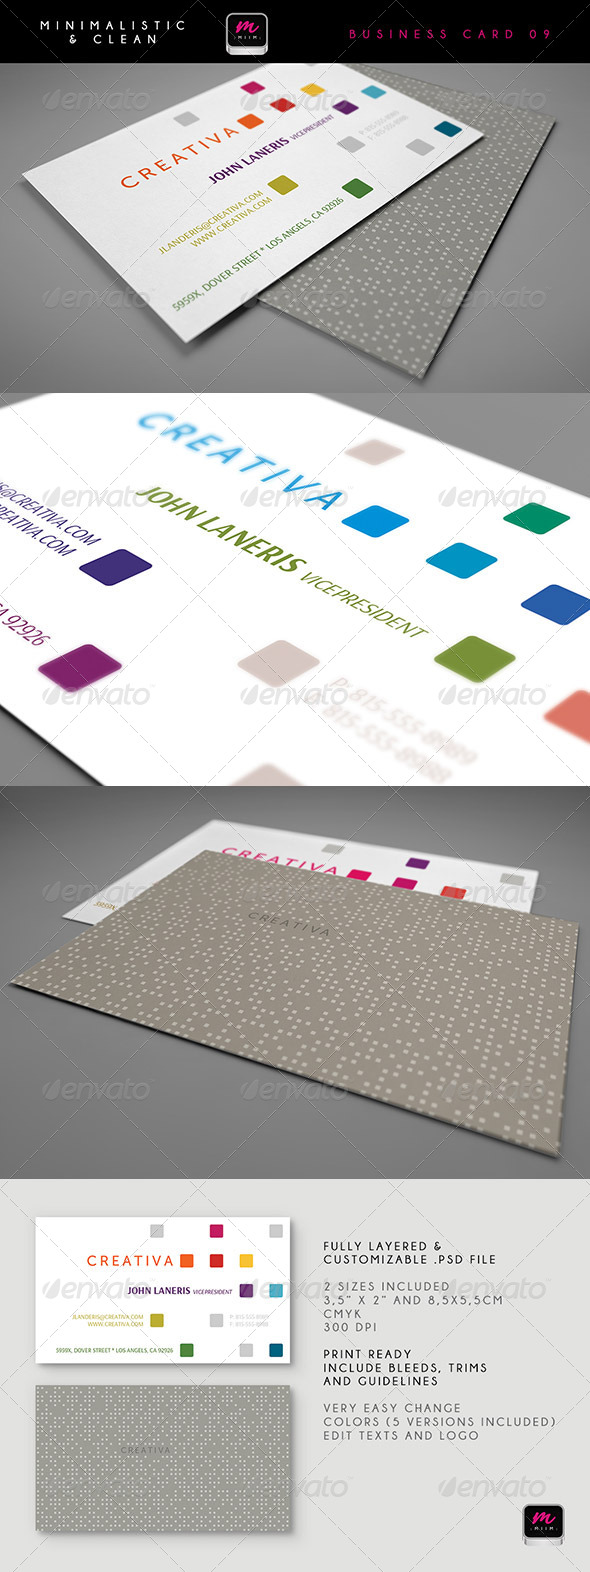 GraphicRiver Clean Business Card Template 09 5913435